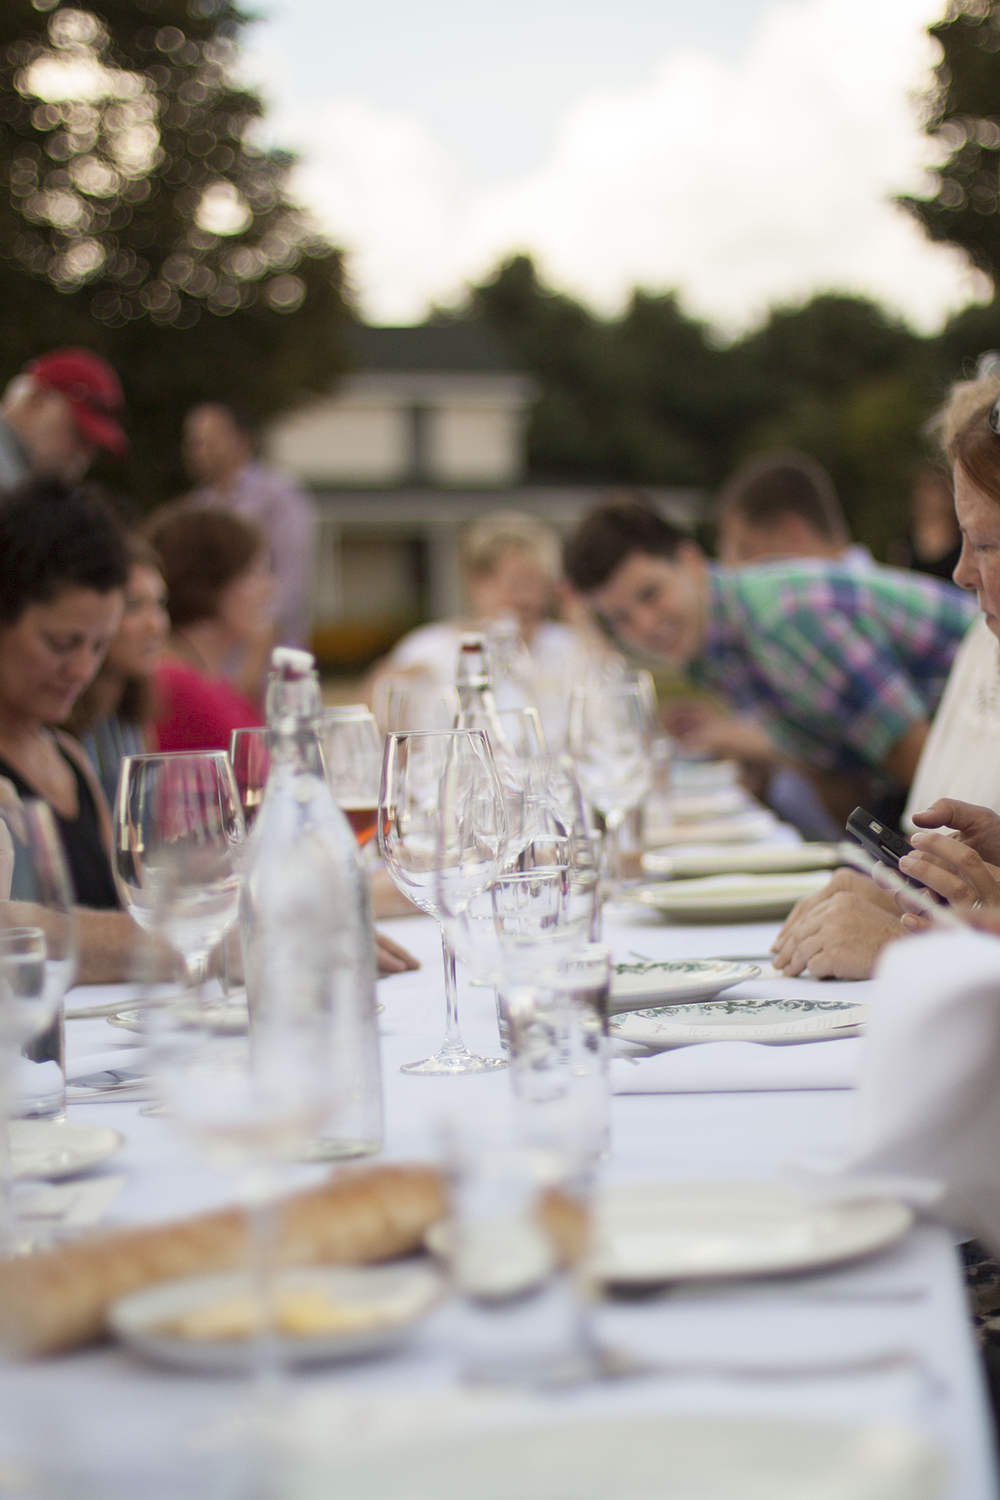 Communal Dining at Outstanding In The Field at Kinnikinnick Farm - by Bubbles in Bucktown